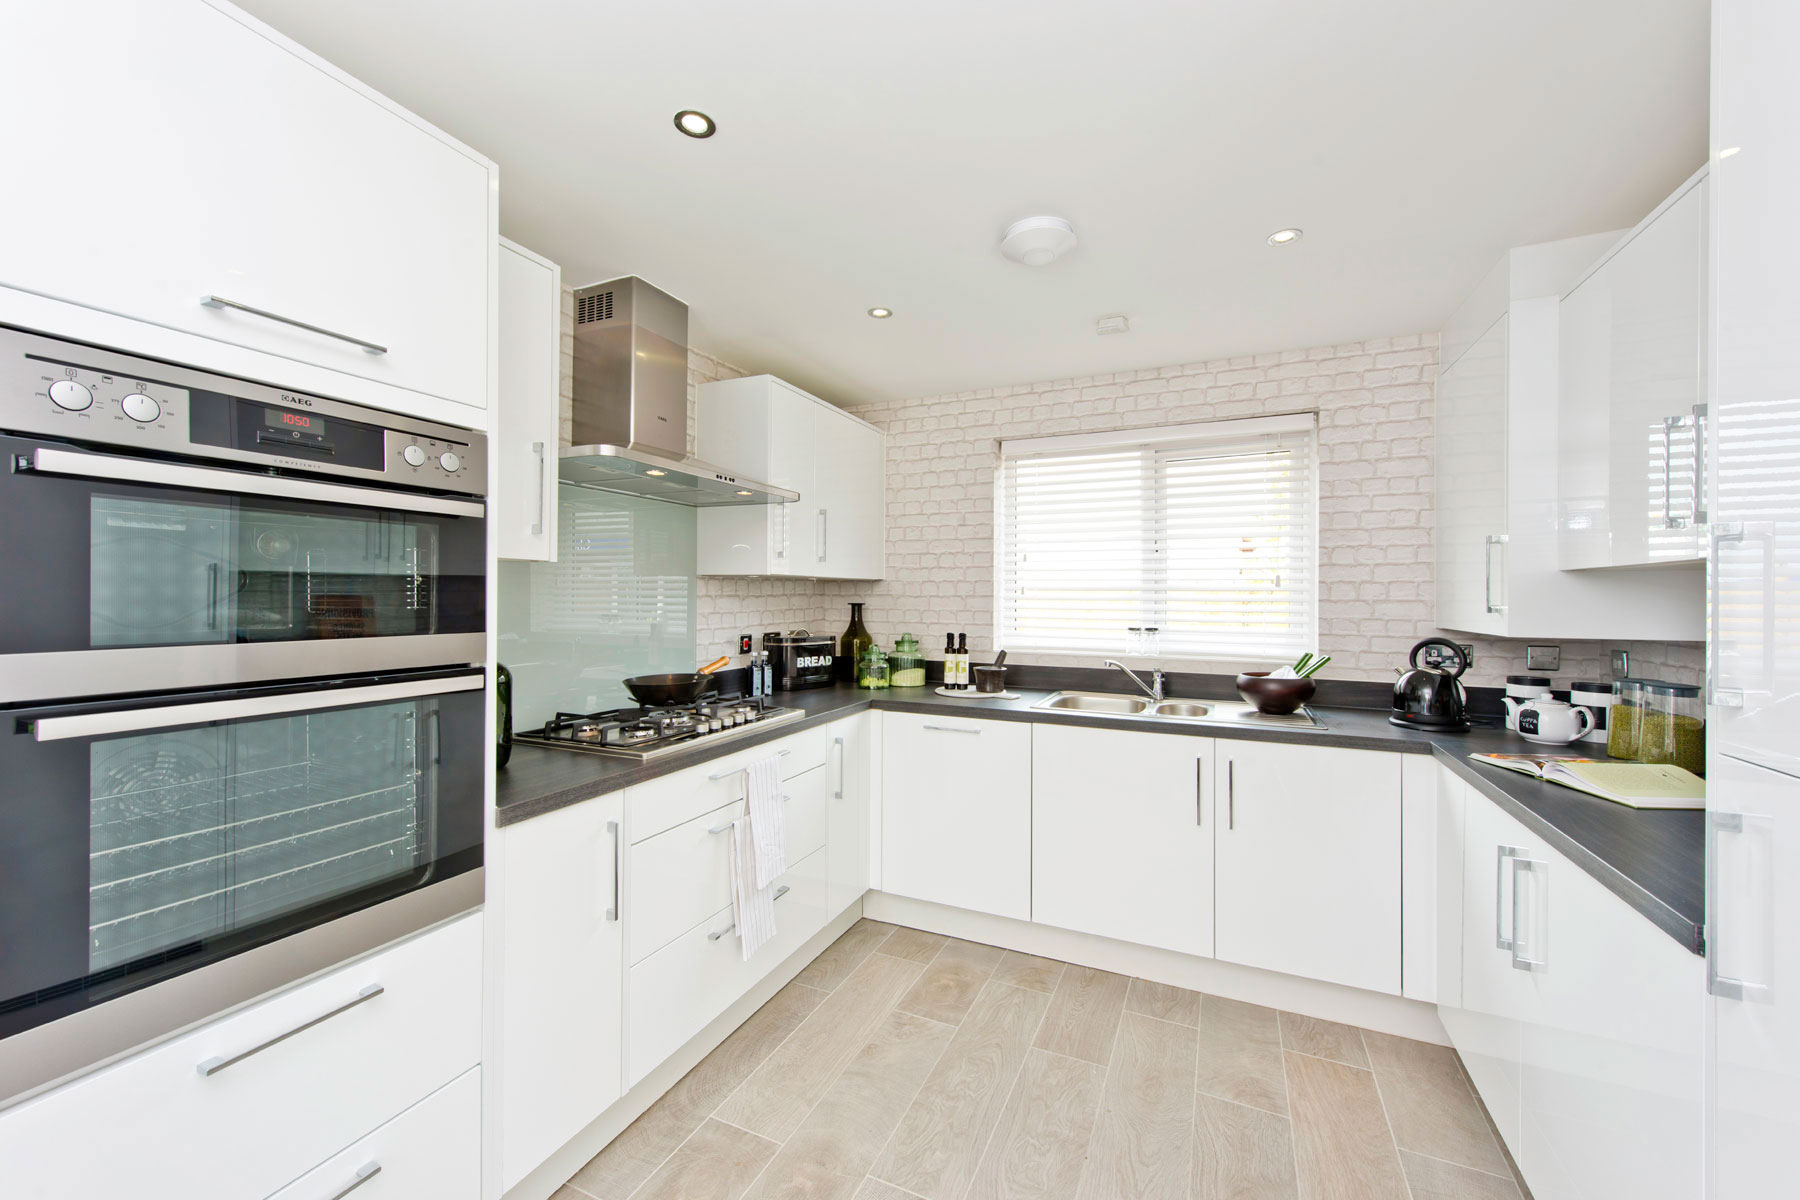 TW Exeter - Rackenford Meadow - Yewdale example kitchen